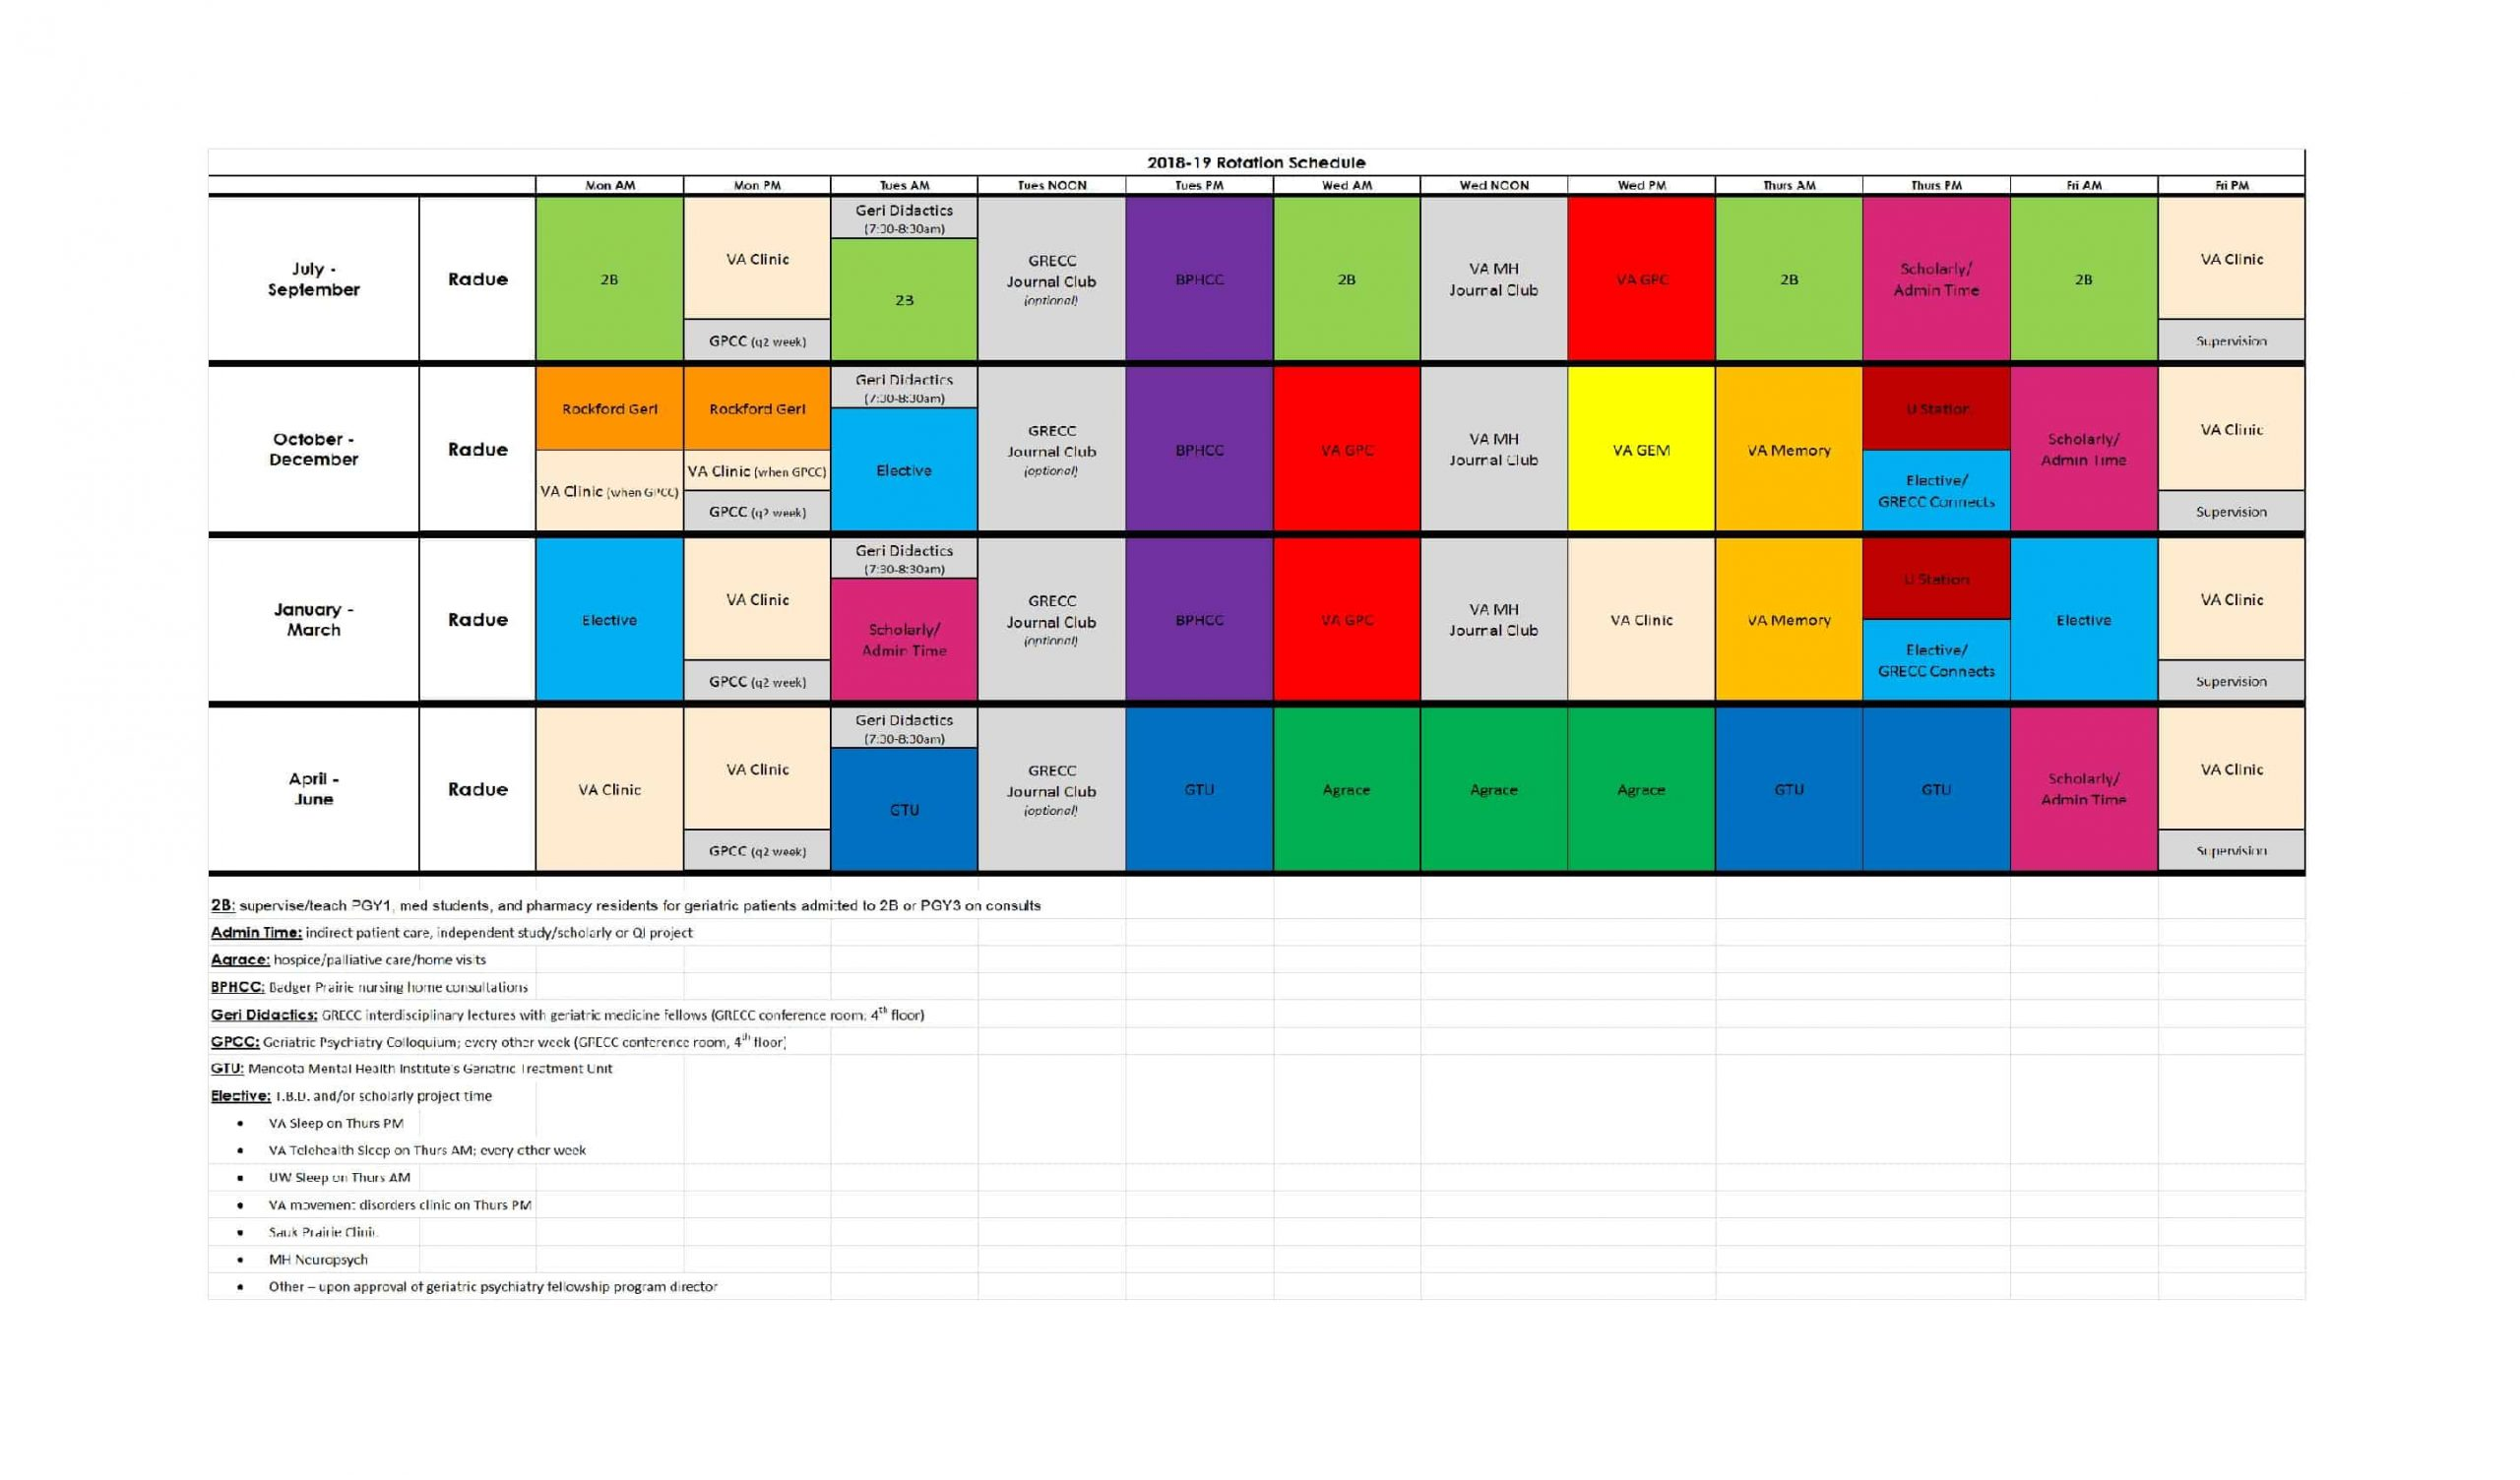 50 Free Rotating Schedule Templates For Your Company